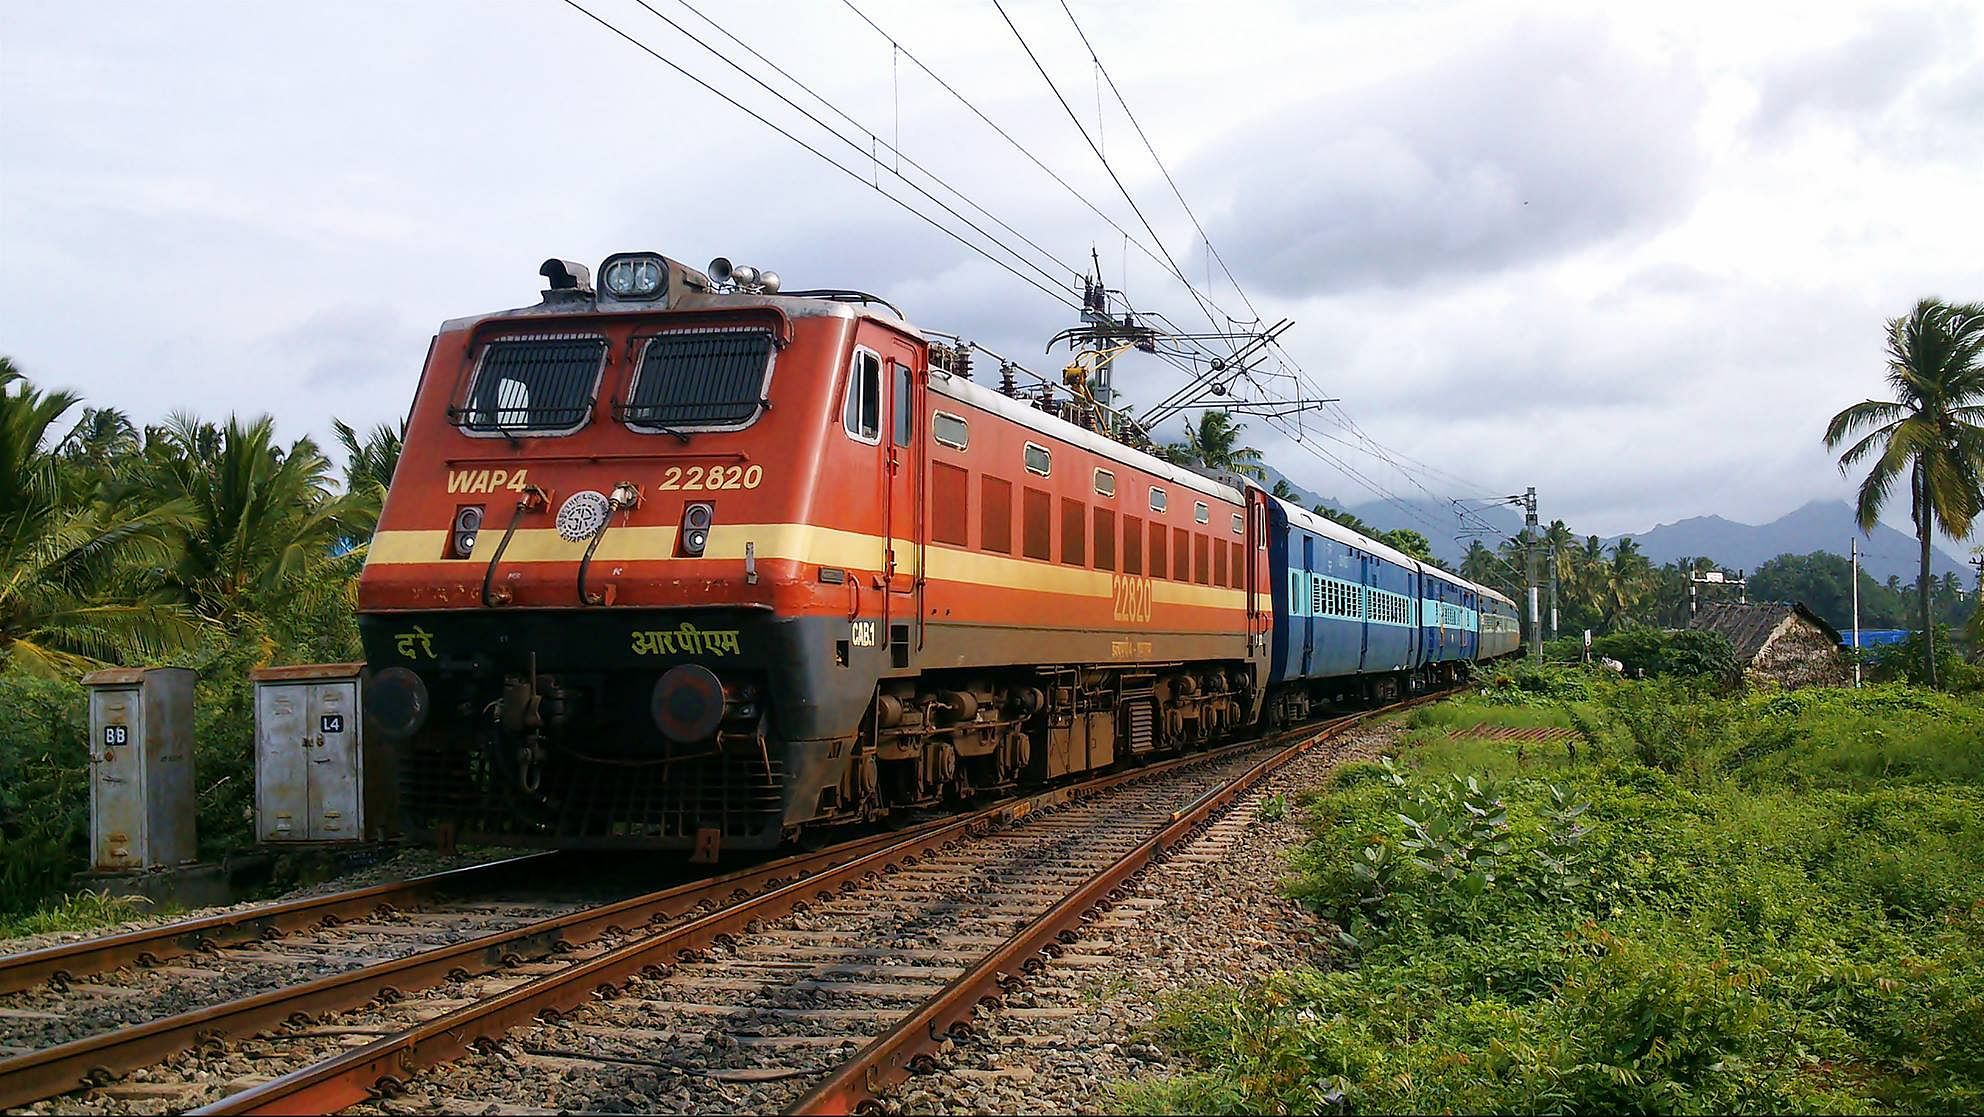 Railways will adopt dynamic pricing. Representative image only. Source: Wikimedia Commons.